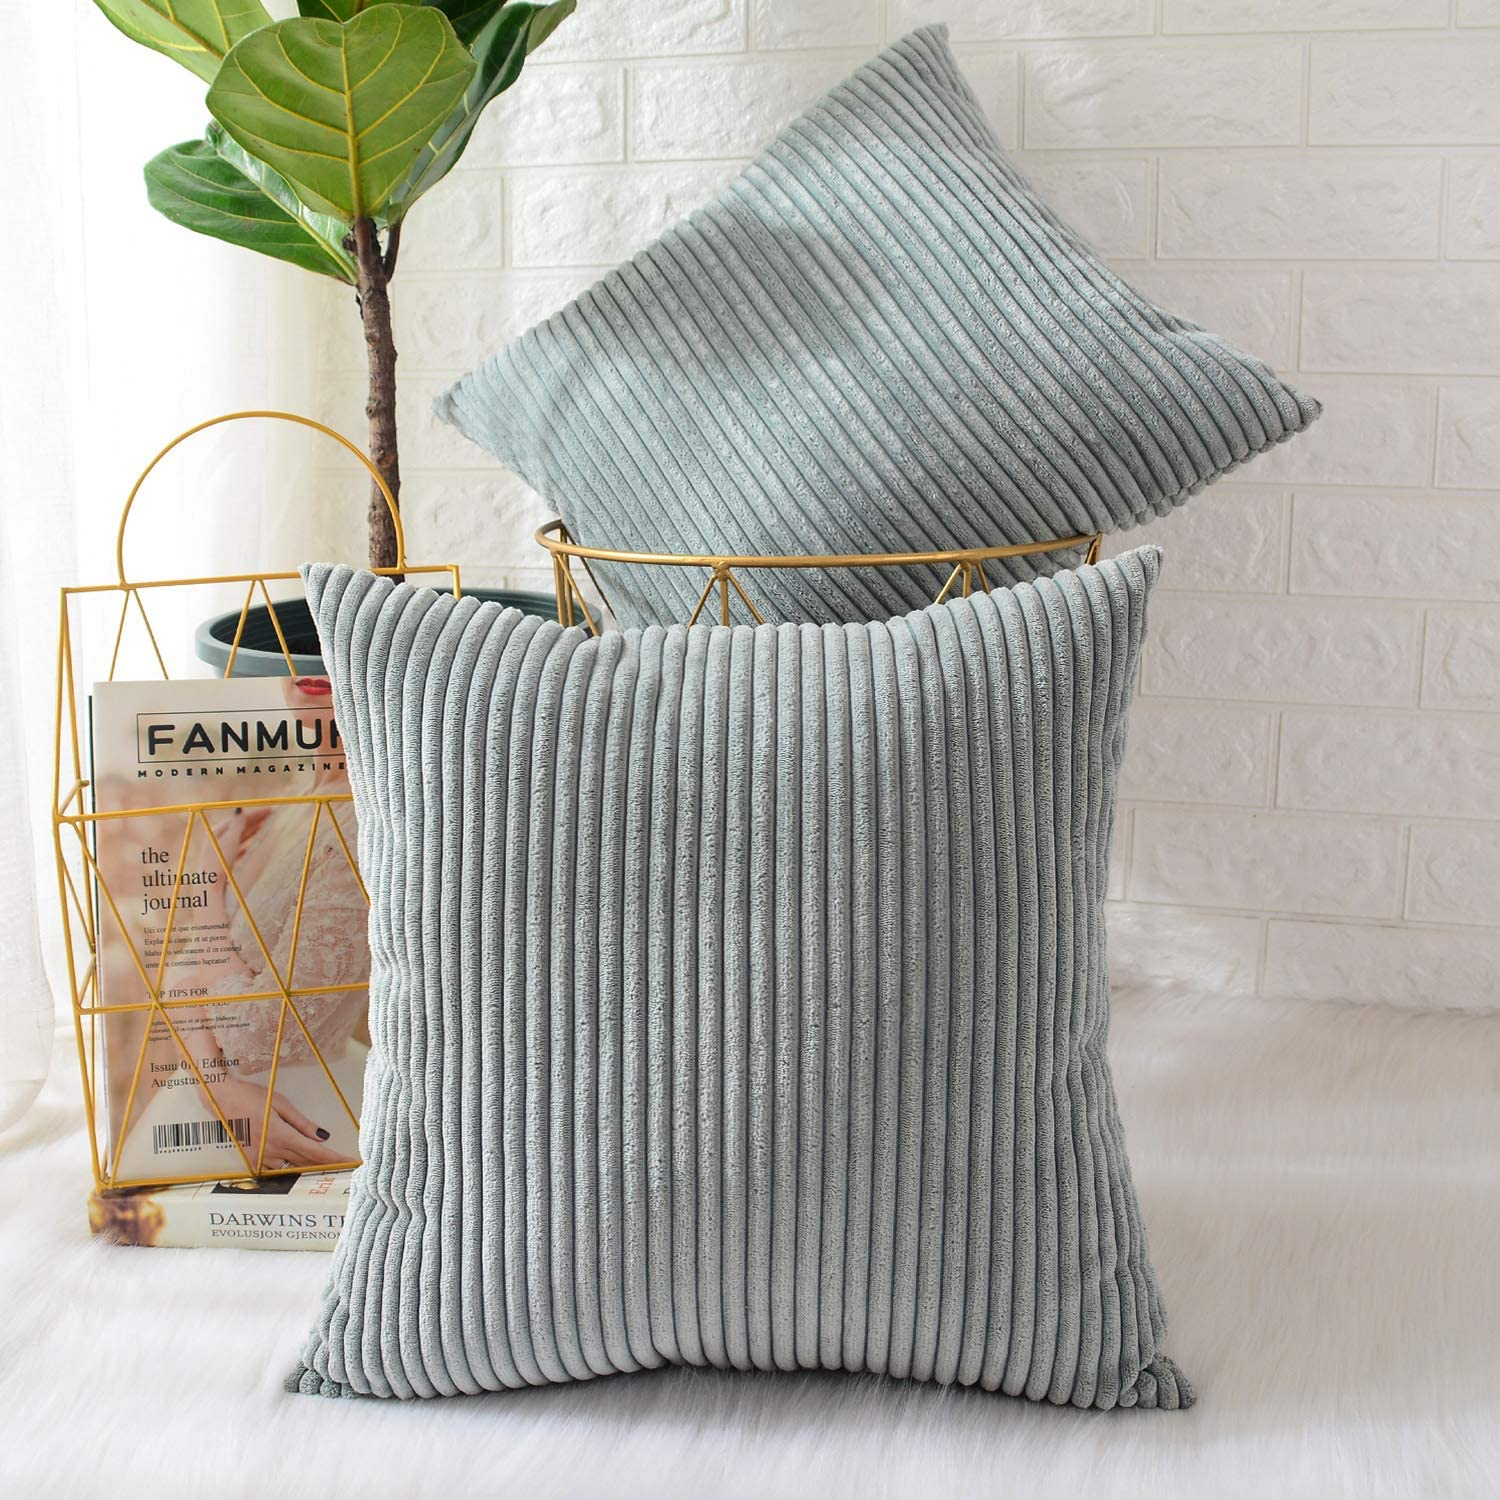 MERNETTE Pack of 2, Corduroy Soft Decorative Square Throw Pillow Cover Cushion Covers Pillowcase, Home Decor Decorations for Sofa Couch Bed Chair 18x18 Inch/45x45 cm (Striped Grey Blue)